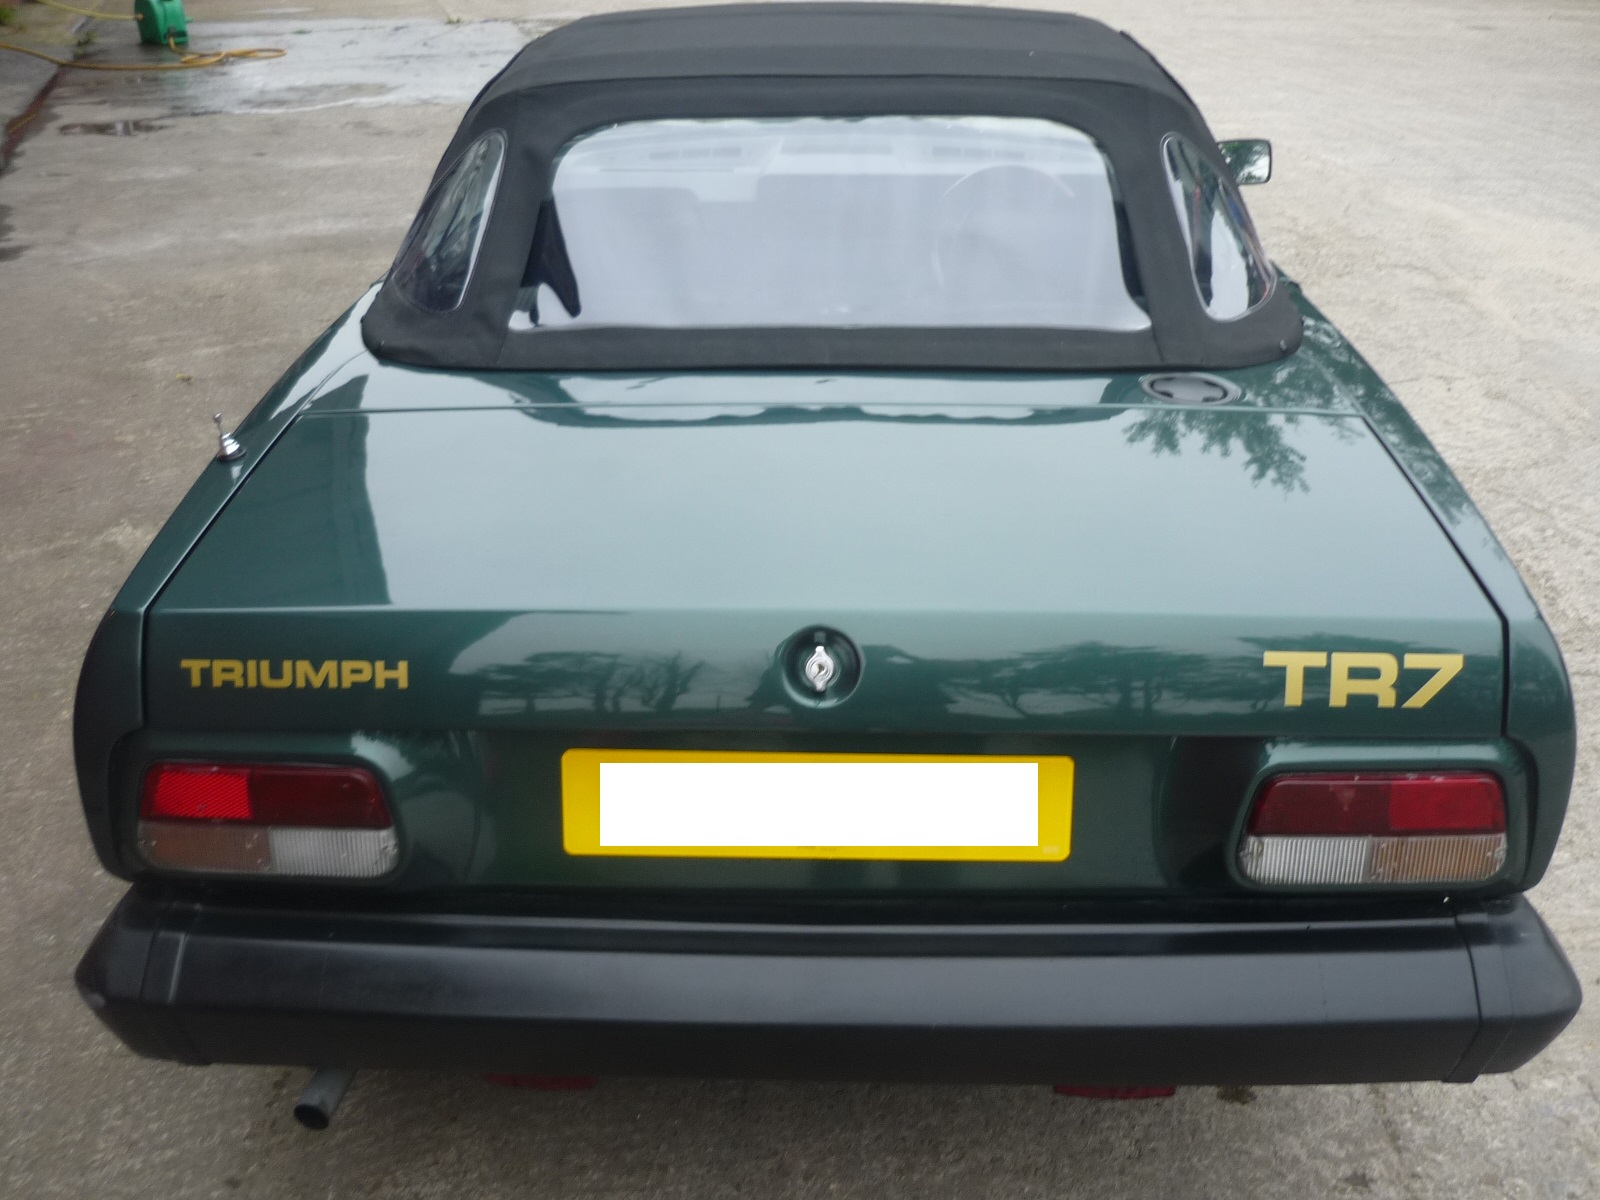 Completed Triumph TR7 Restoration